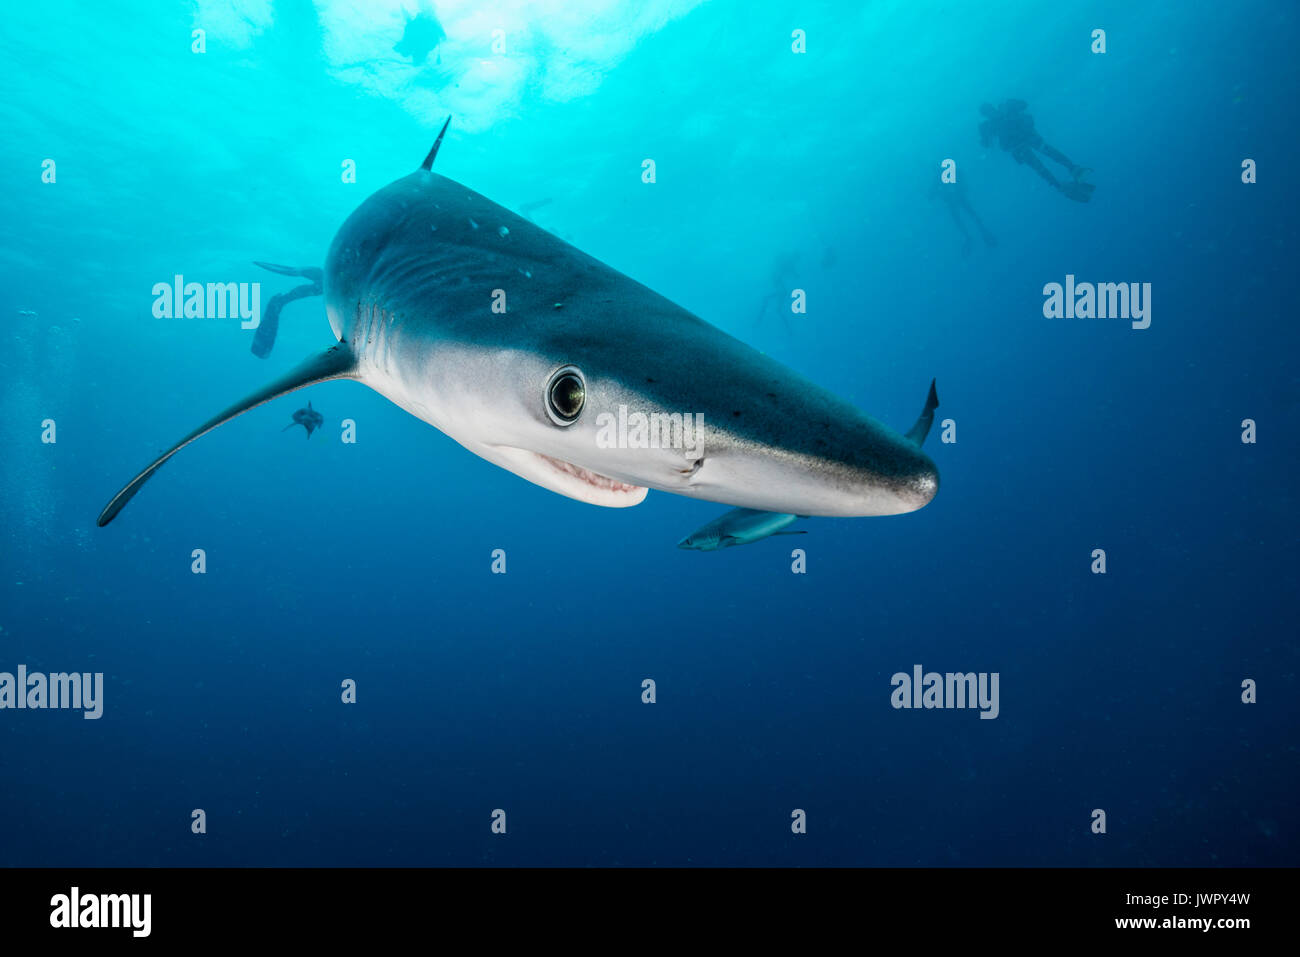 Underwater view of a blue shark and pilot fish, image was taken about 50 kilometres offshore past Western Cape, South Africa. - Stock Image